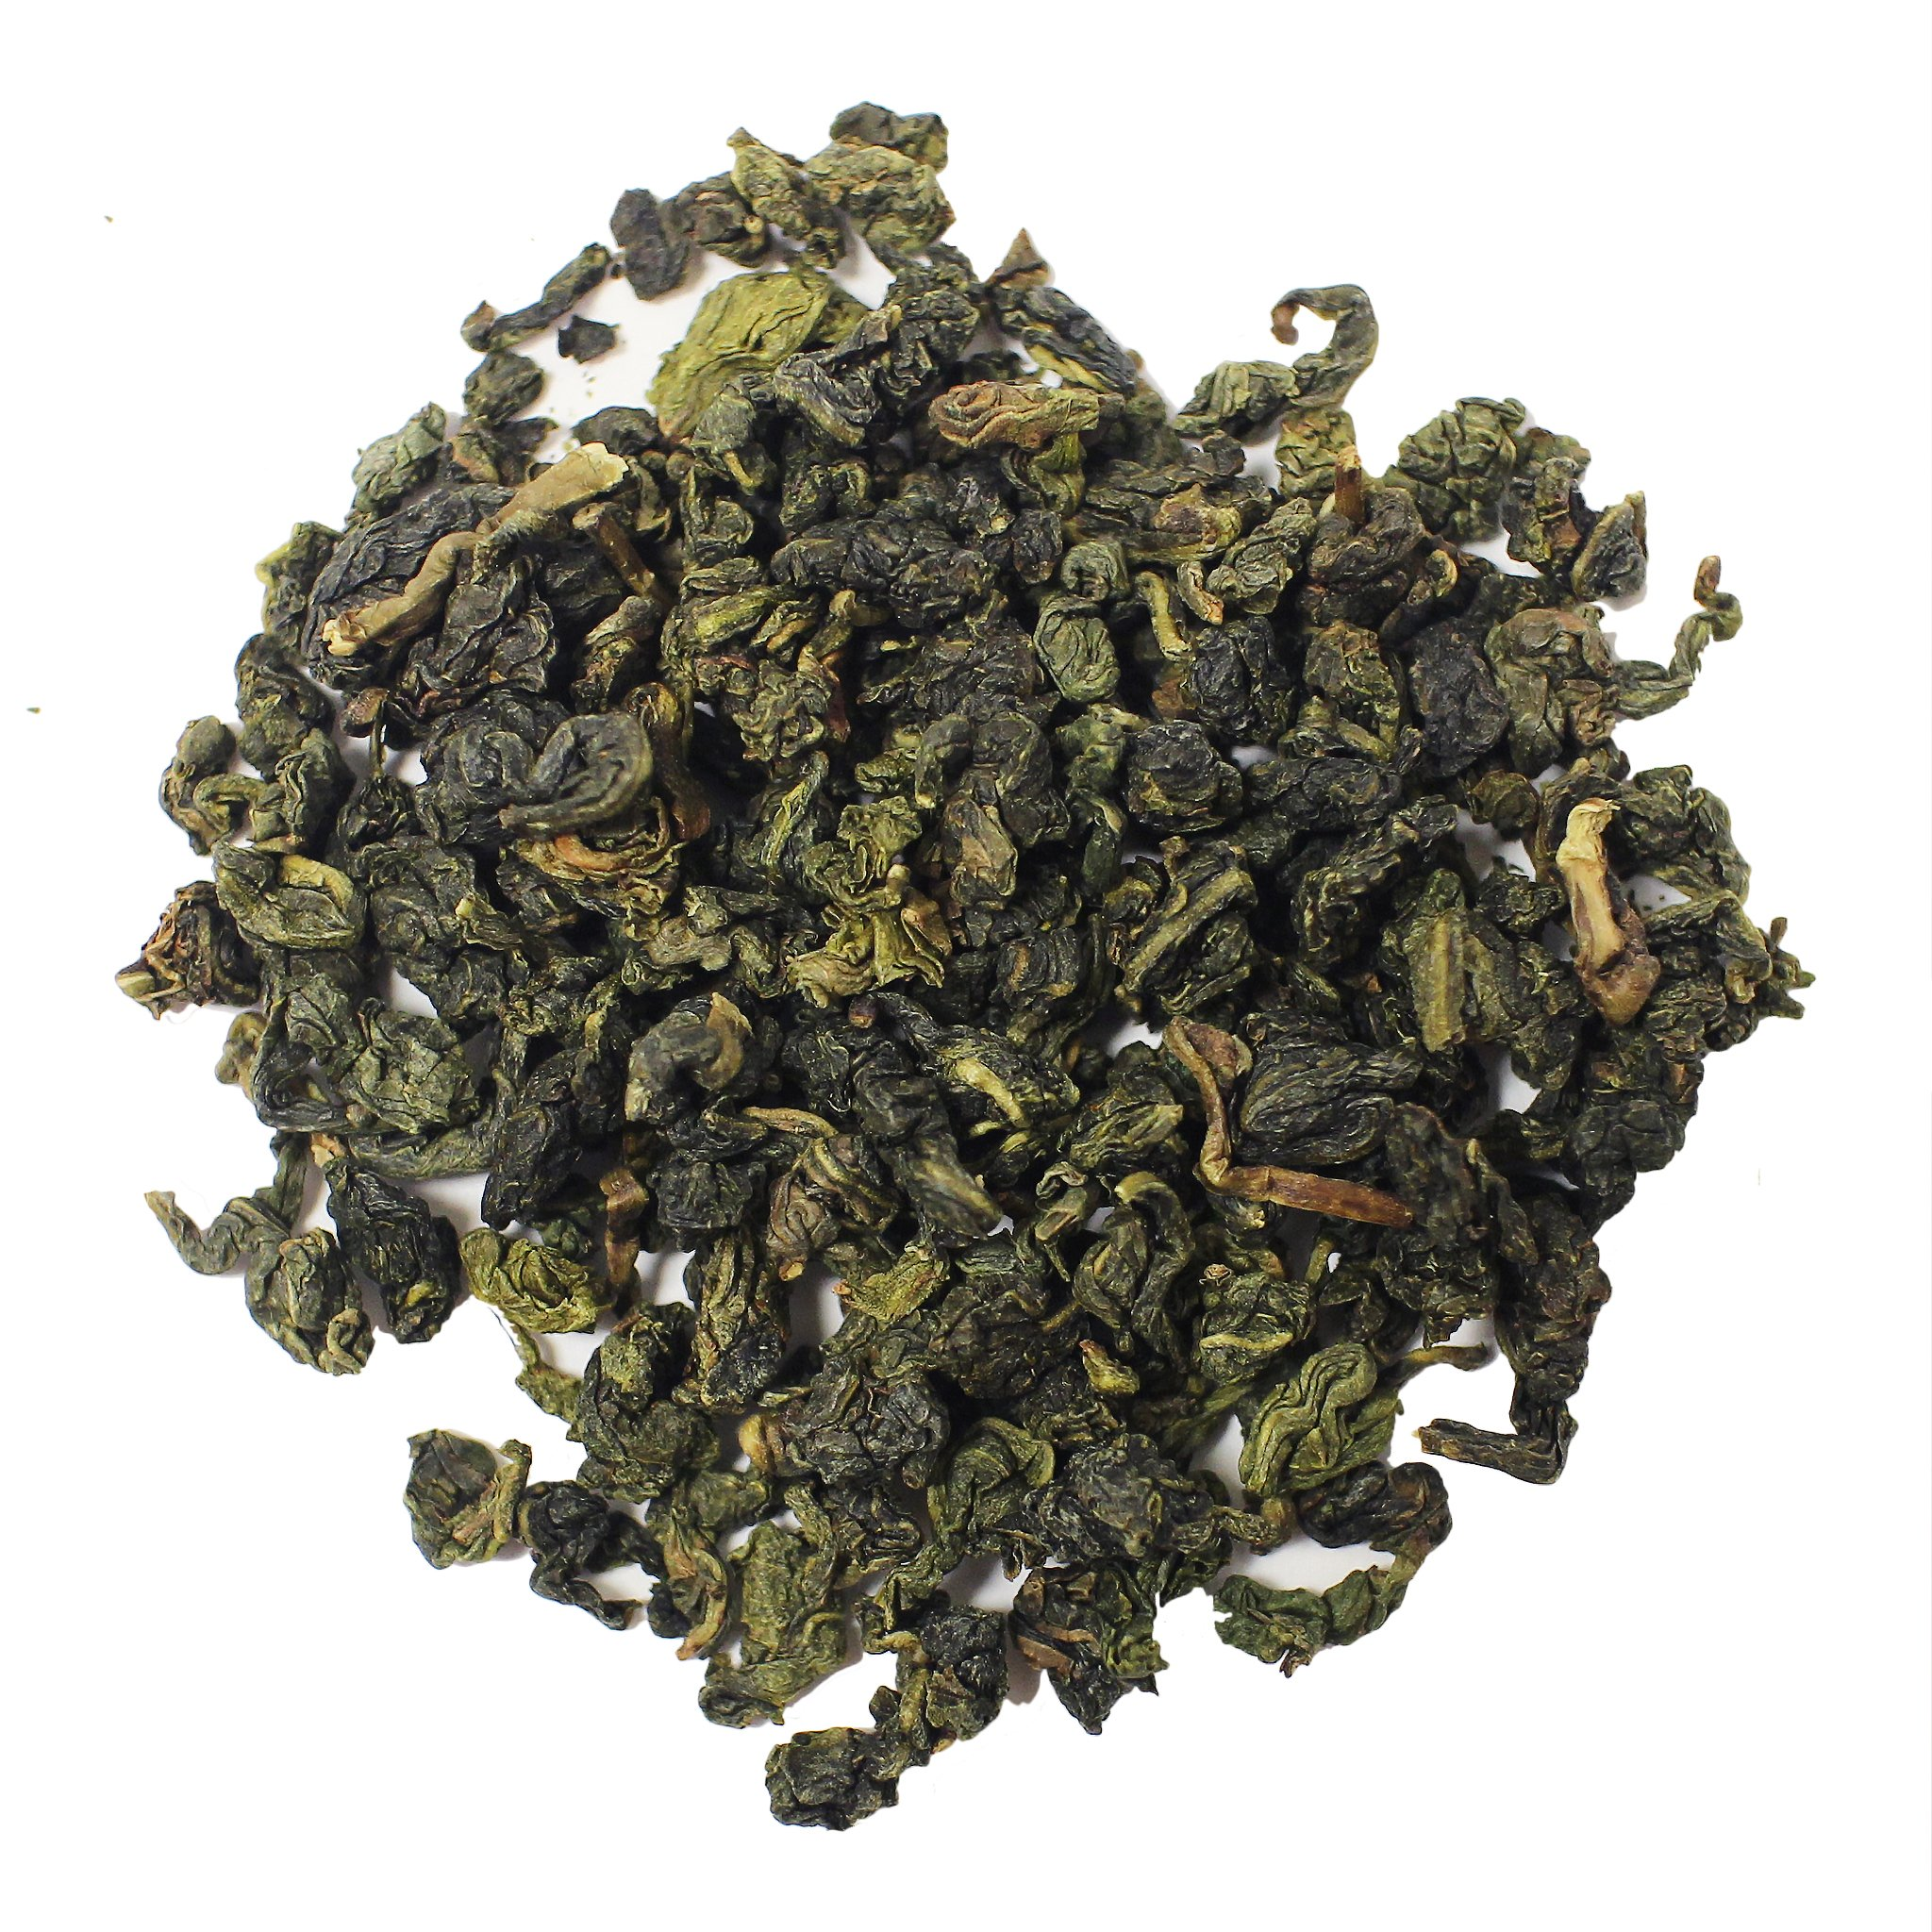 The Tea Farm - Monkey Picked Tie Guan Yin Oolong Tea - Loose Leaf Oolong Tea (8 Ounce Bag) by The Tea Farm